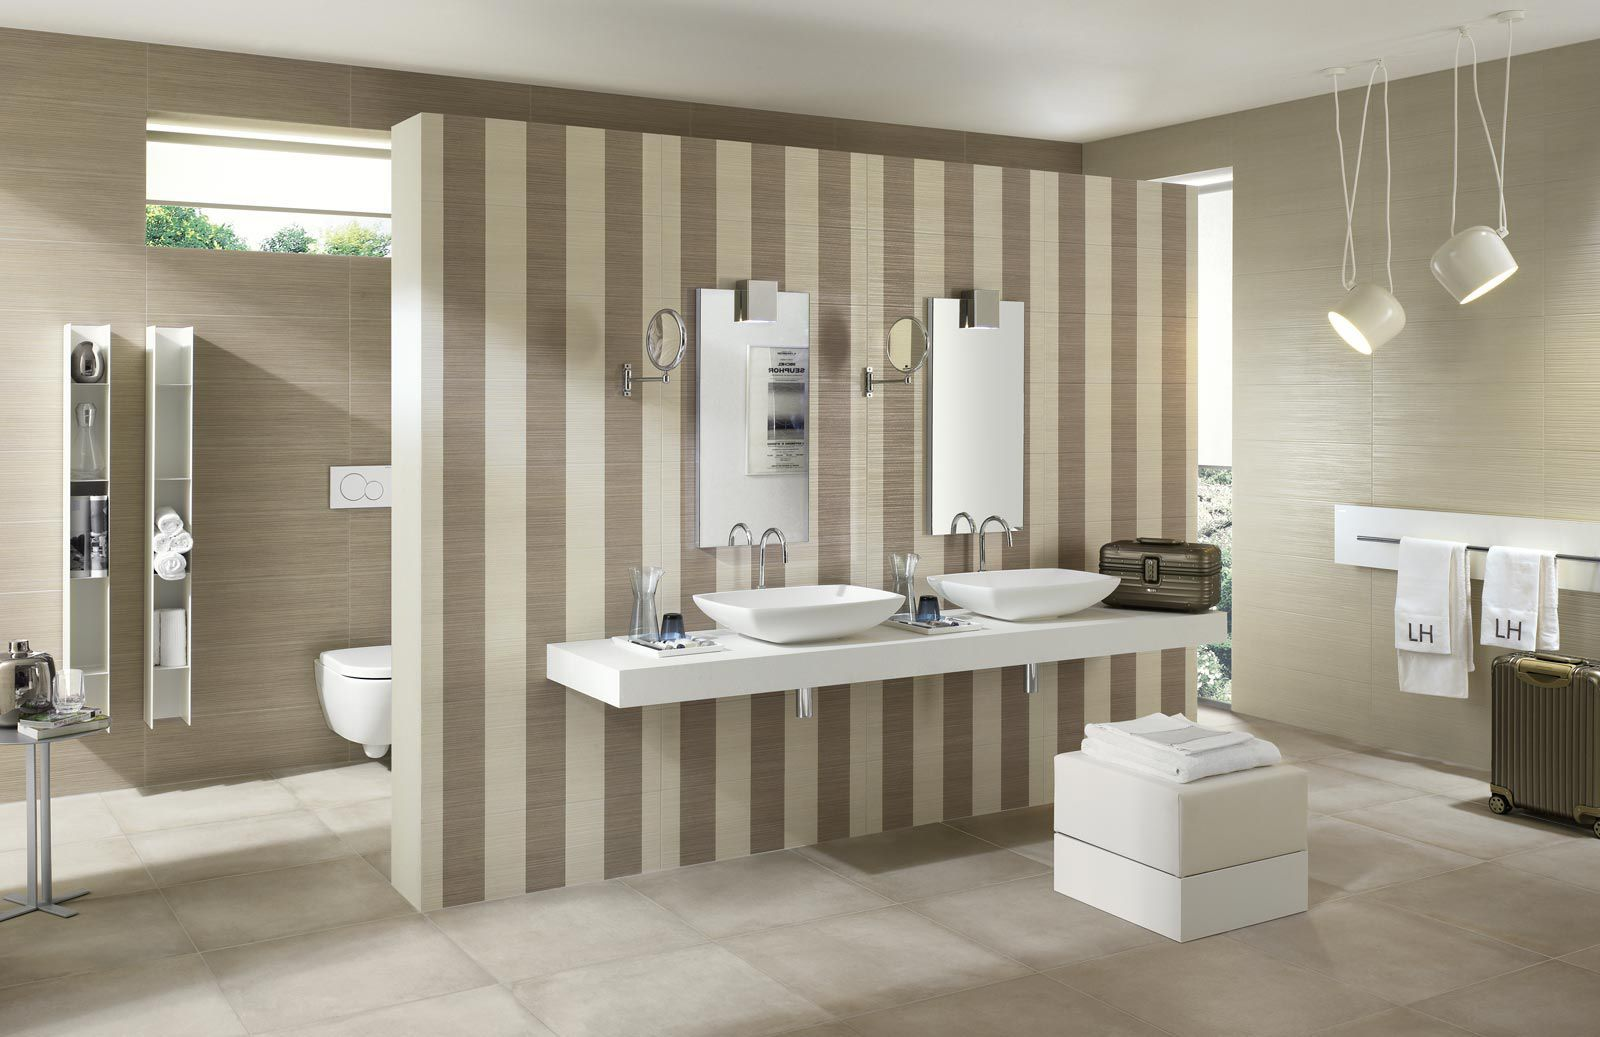 Best Ragno Ceramiche Bagno Ideas - Amazing House Design ...